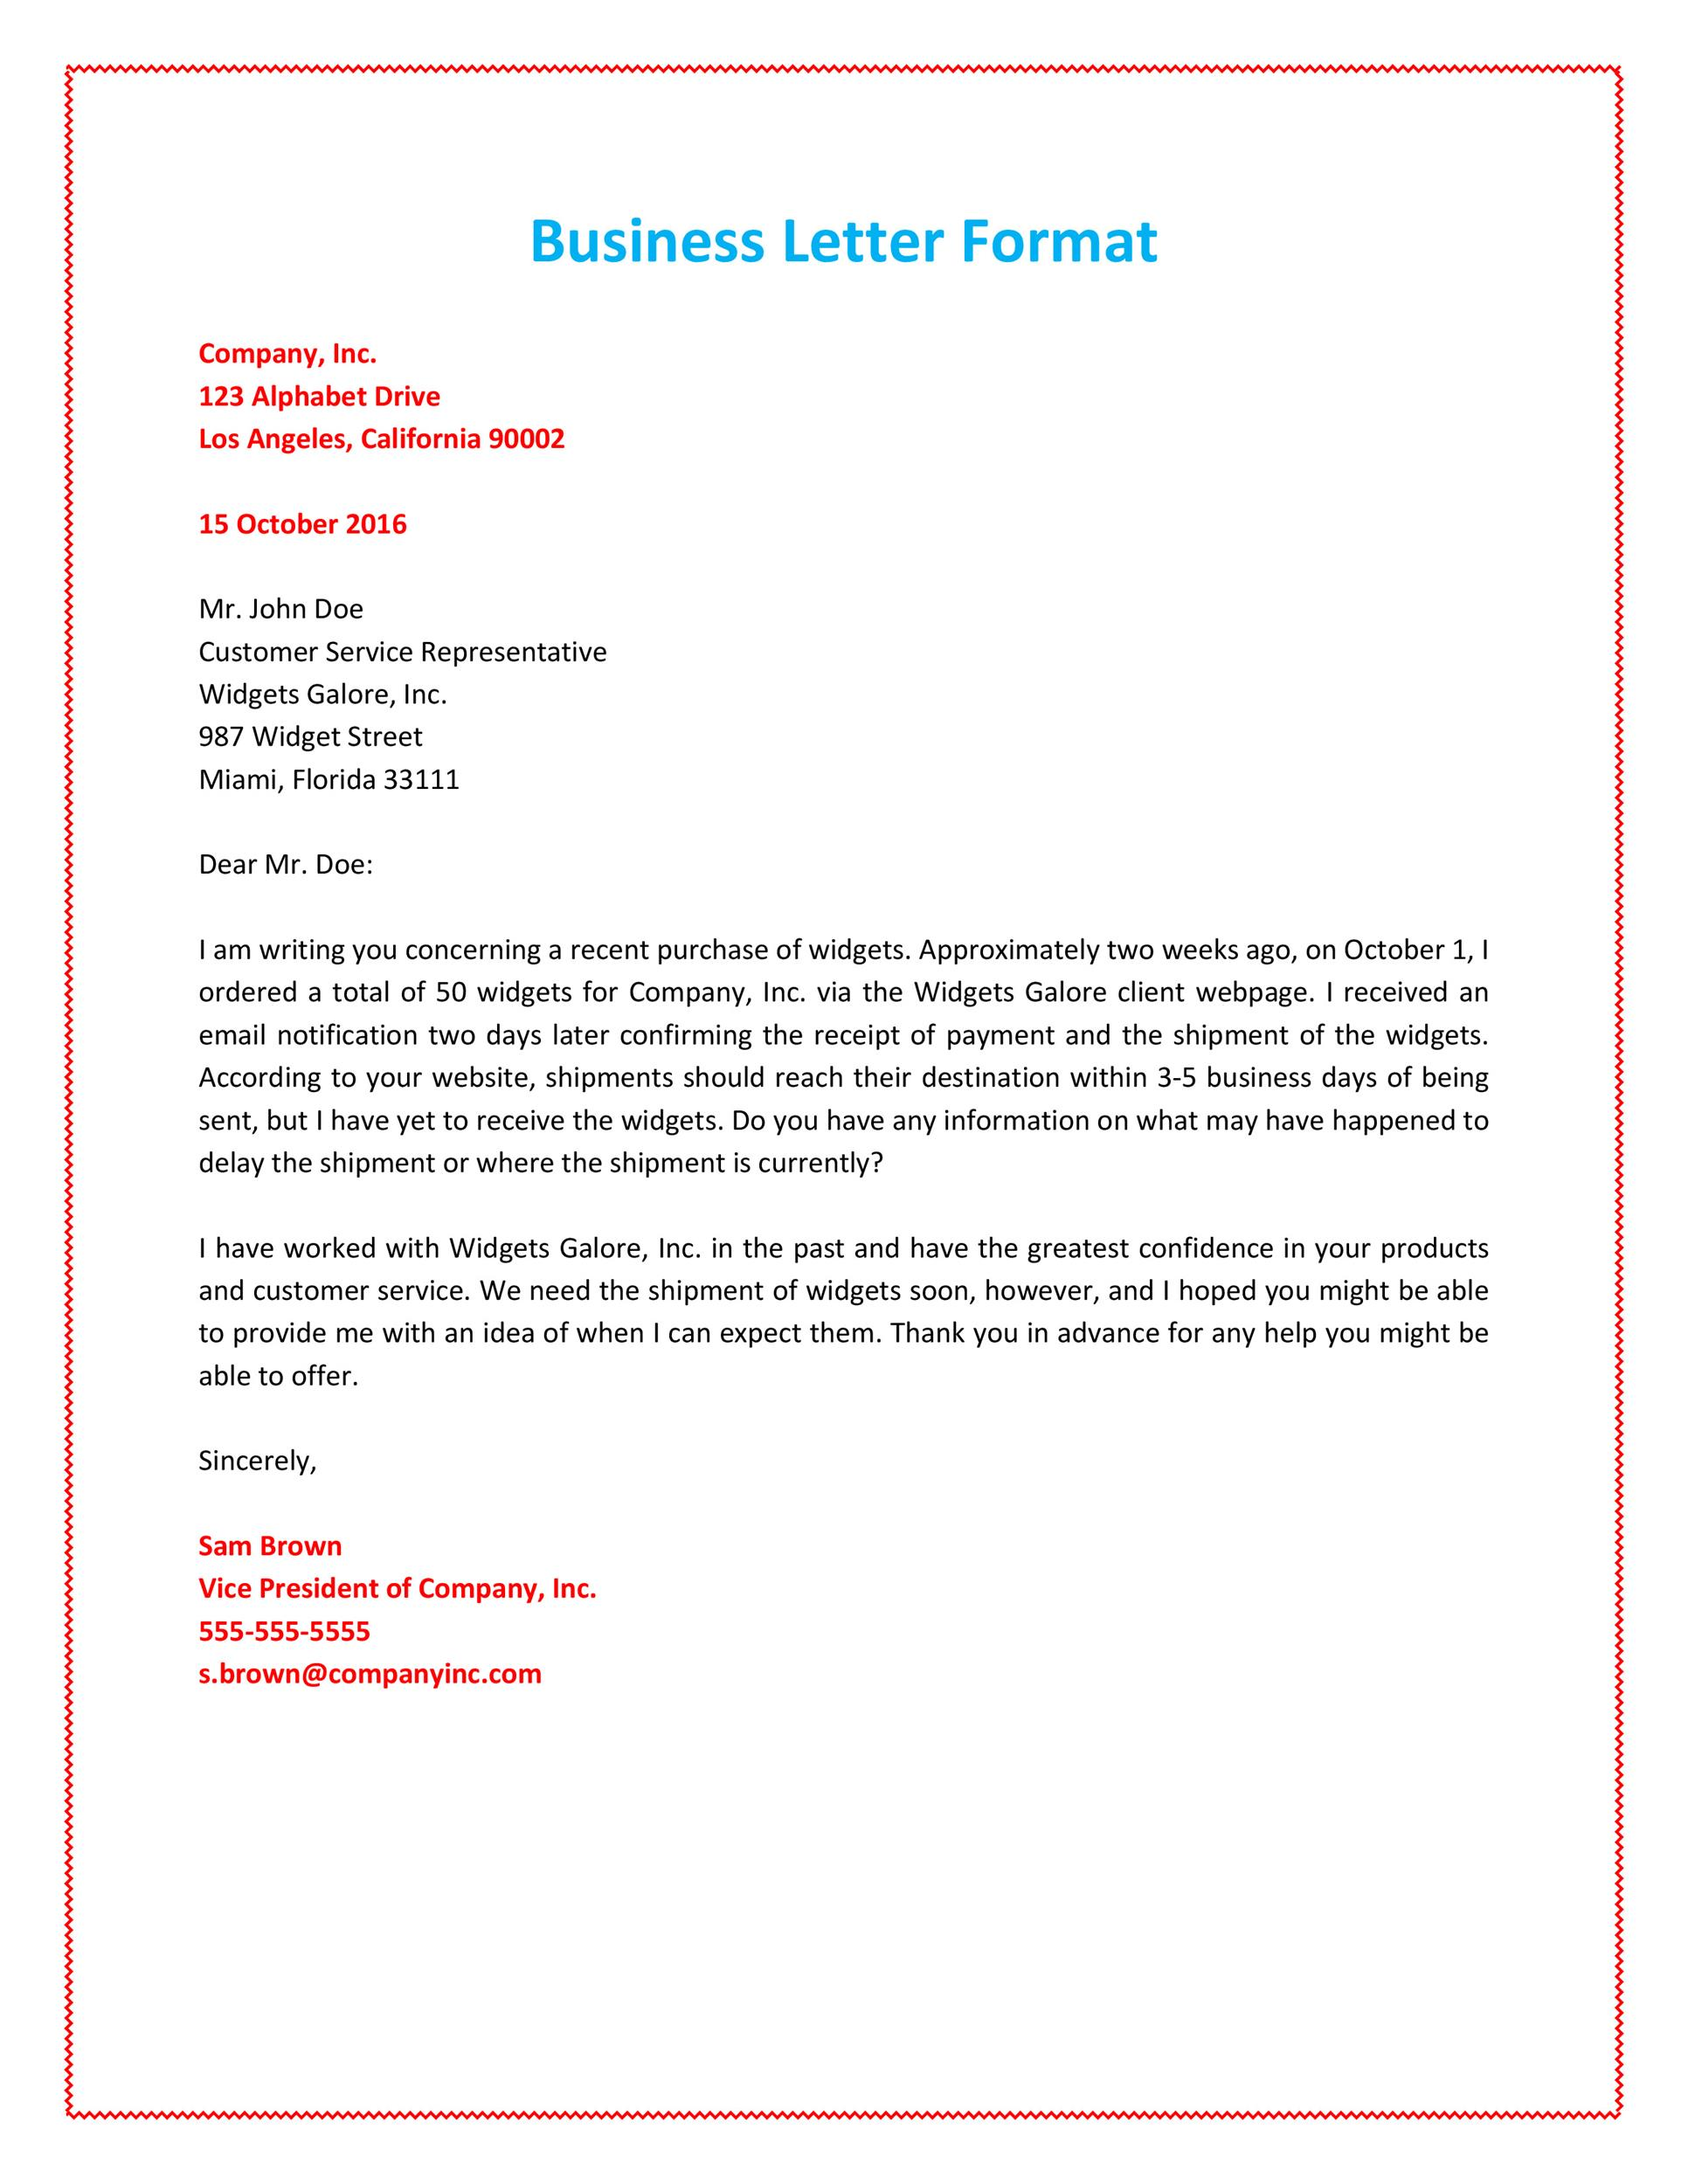 formal business letter format templates examples template lab business letter format example